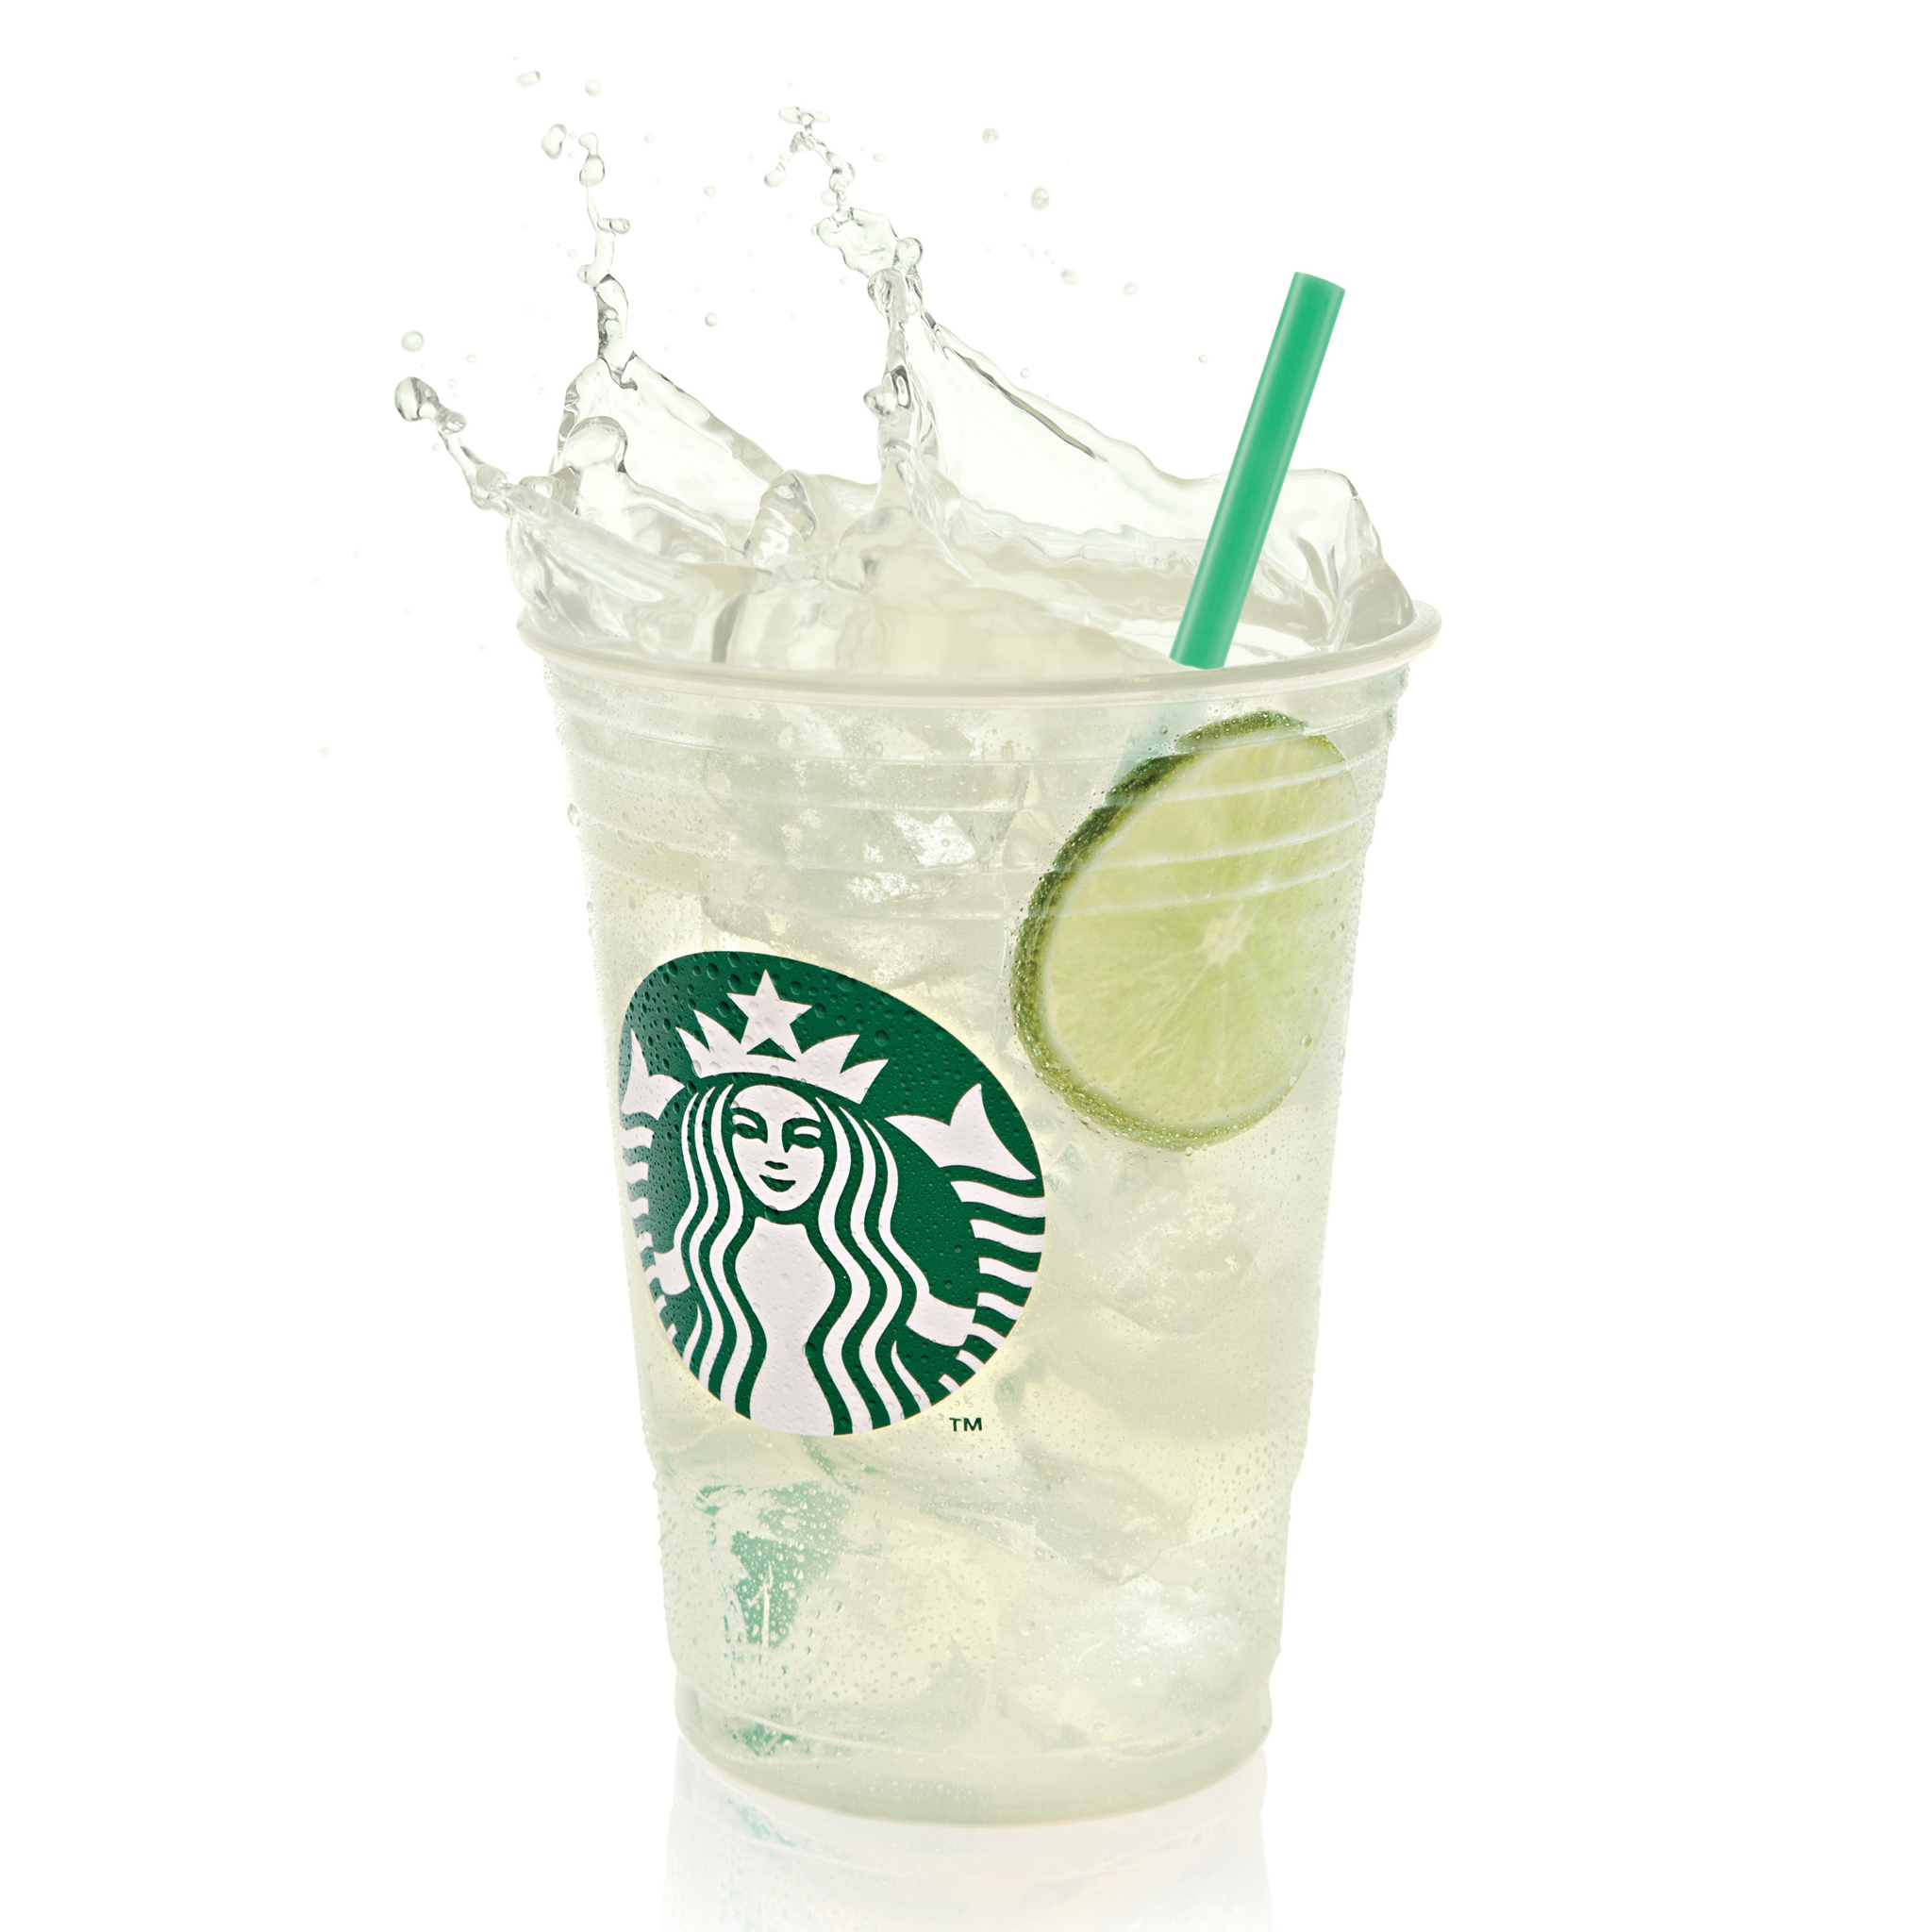 Starbucks Cool Lim 3Wallpapers ipad Retina Starbucks Cool Lim   iPad Retina